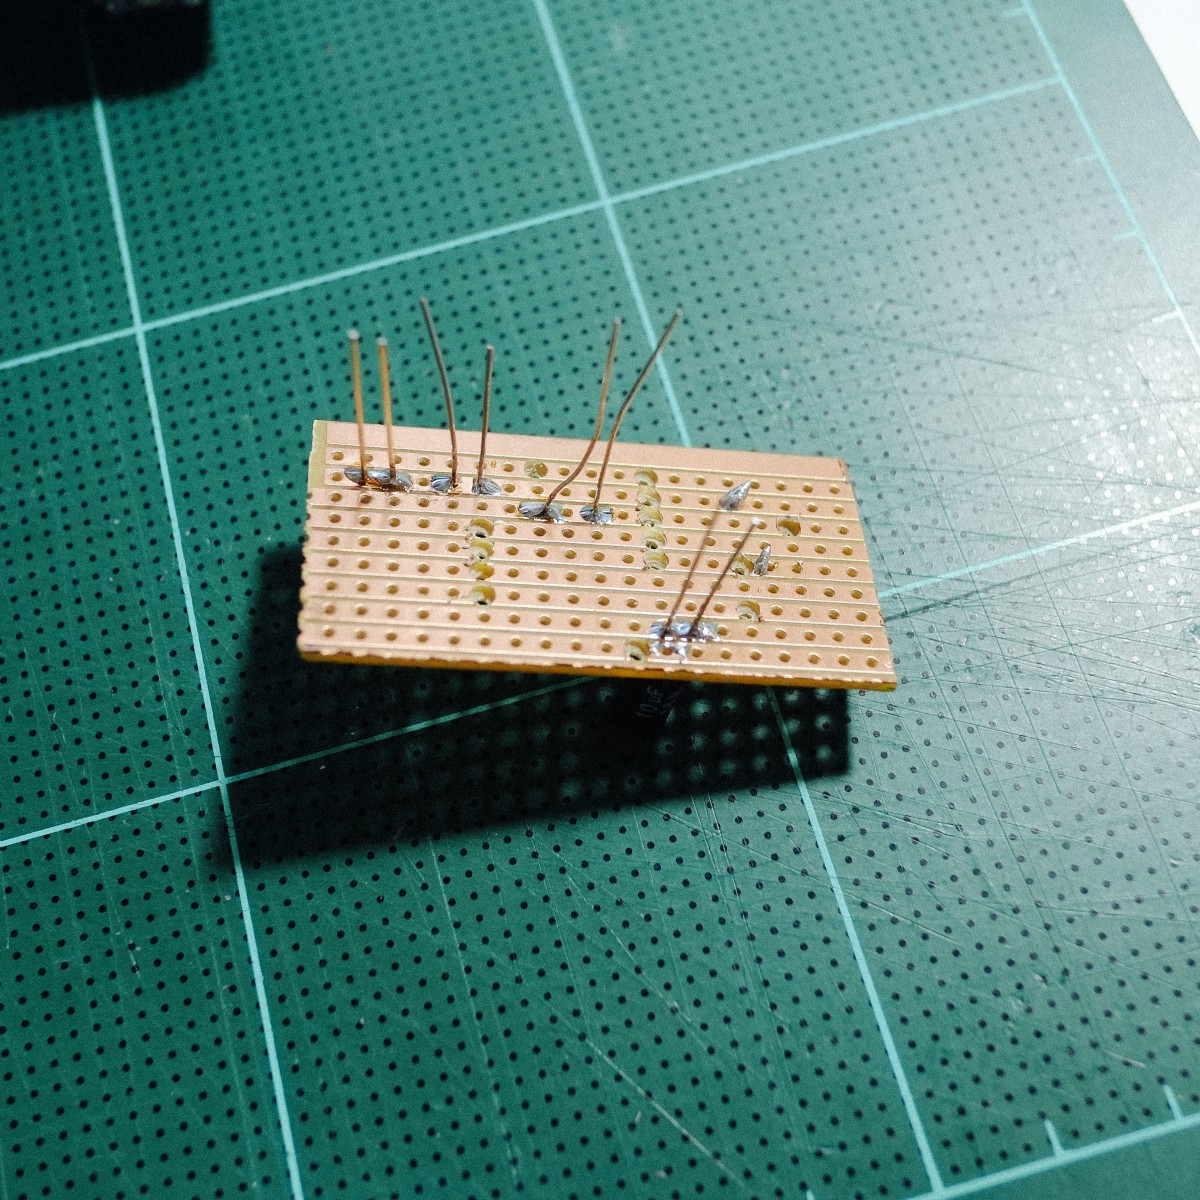 Building My Own Mechanical Keyboard Armno Prommarak Medium Now You Can Solder The Wires To Circuit Board But Before That I Fortunately Have Some Leftover Parts Of Boards Diodes Led Lights At Home Along With Soldering Iron Took Them And